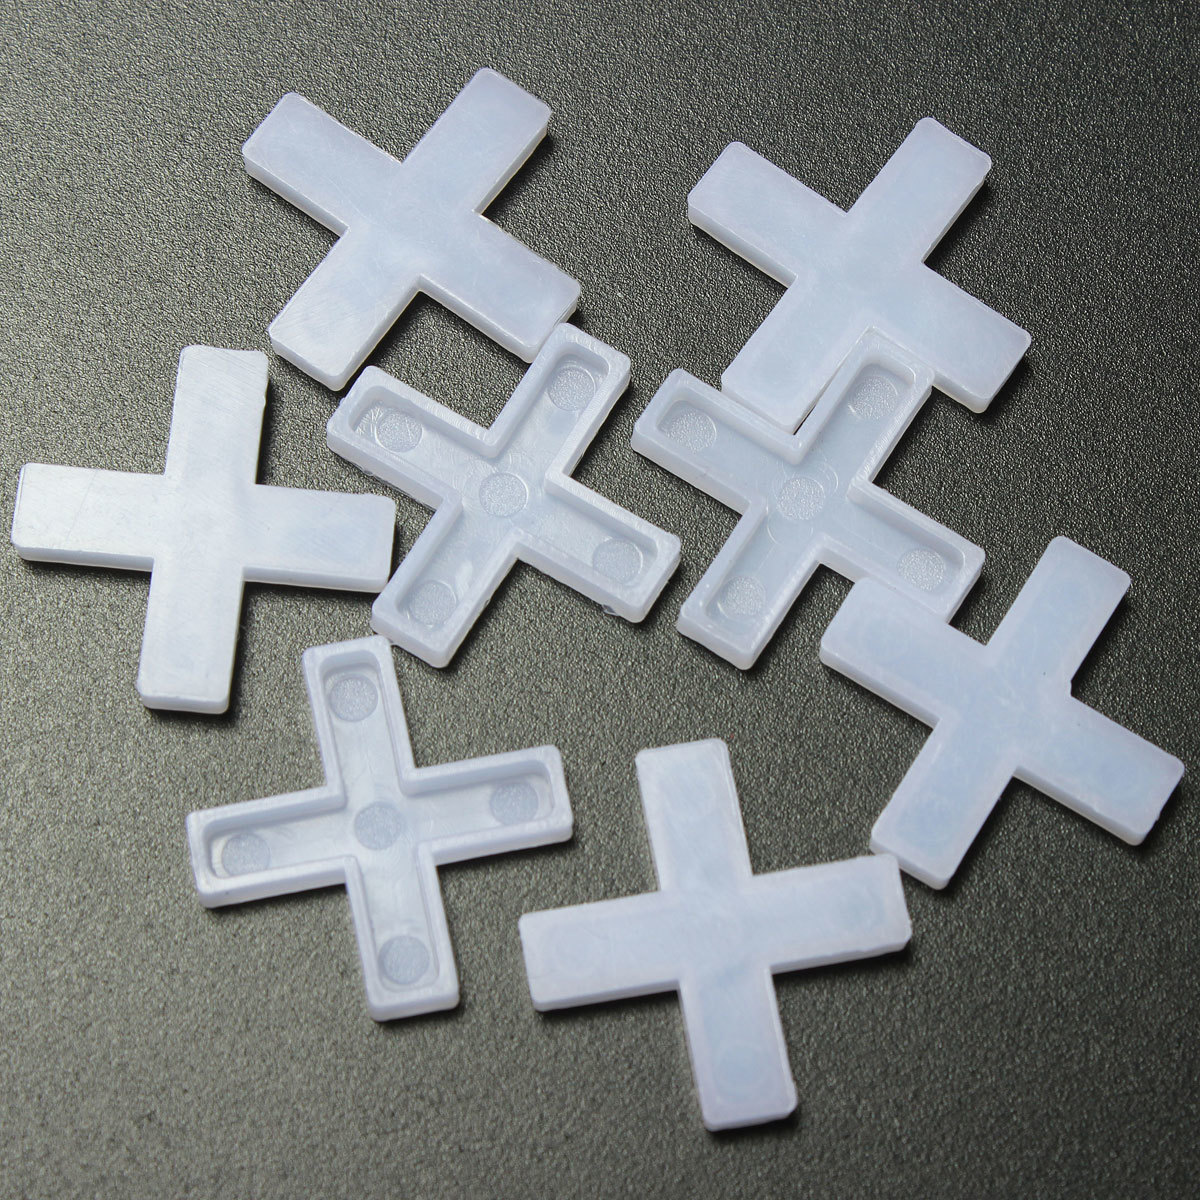 Philippines 100x Wall Floor Tile Spacers Cross 6mm Tiling Ceramic